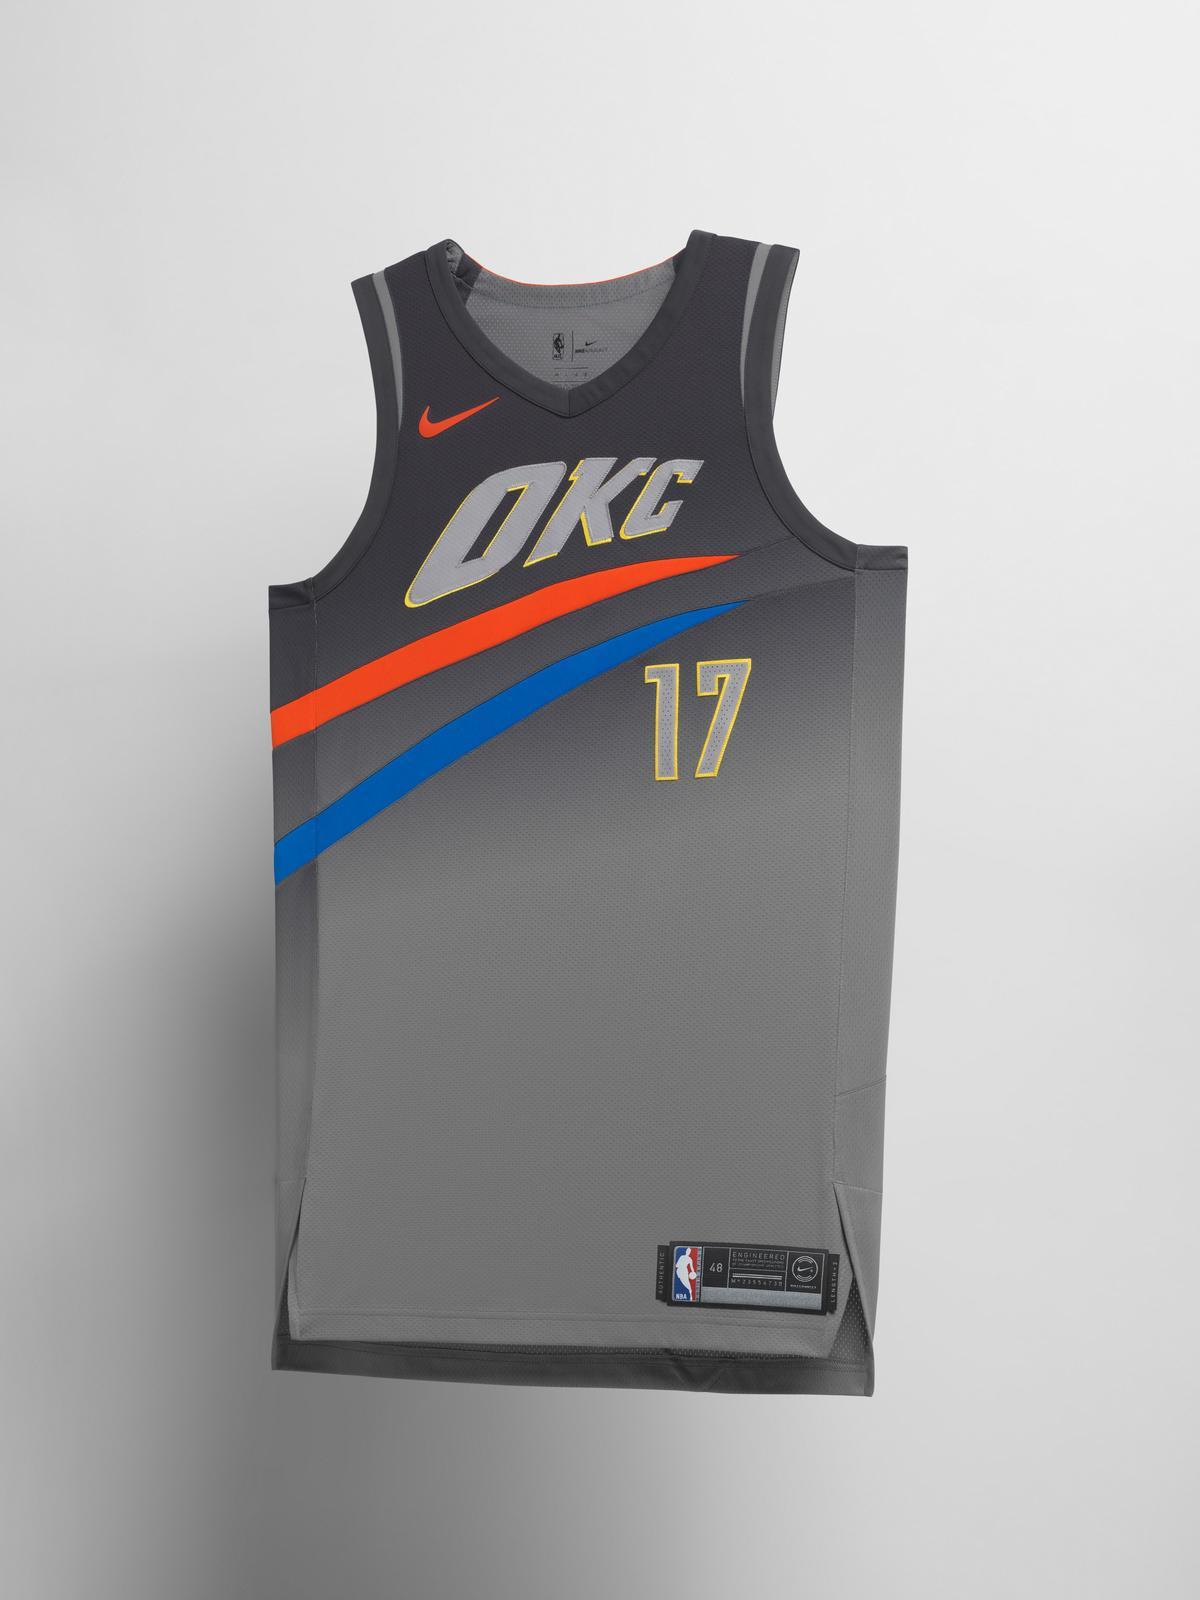 17e55e2d7 Ranking the new Nike  City  uniforms